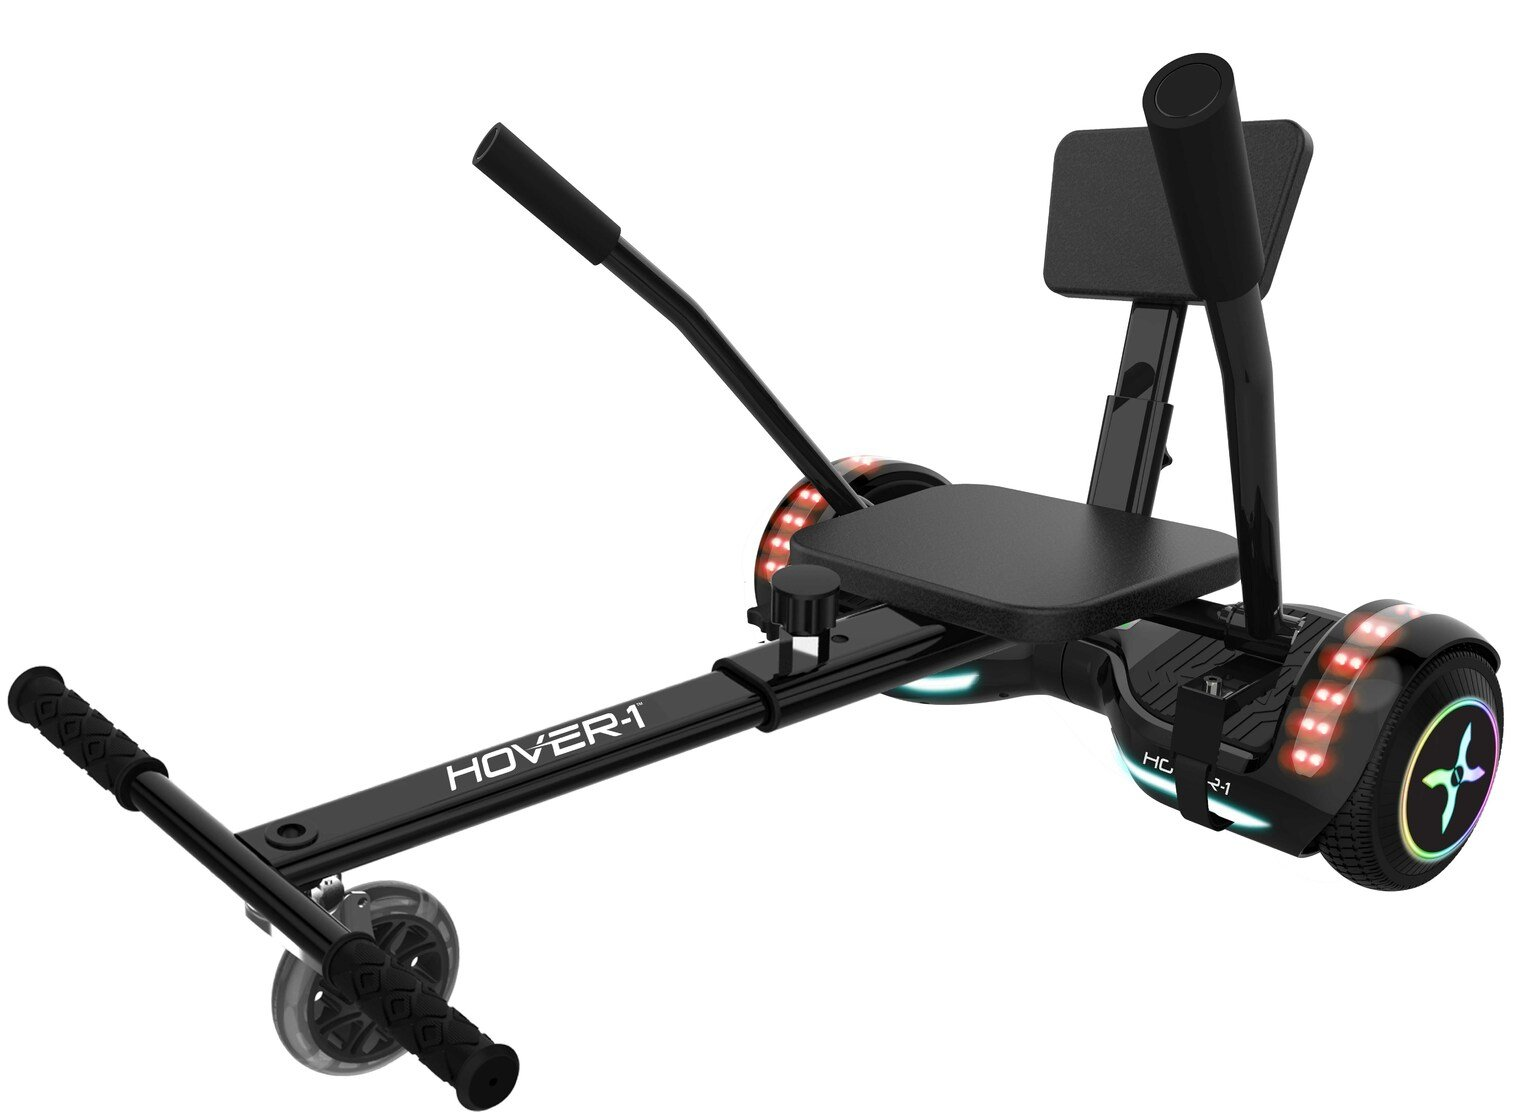 Hover-1 Matrix 6.5 Inch Wheel Buggy with Bluetooth Speaker